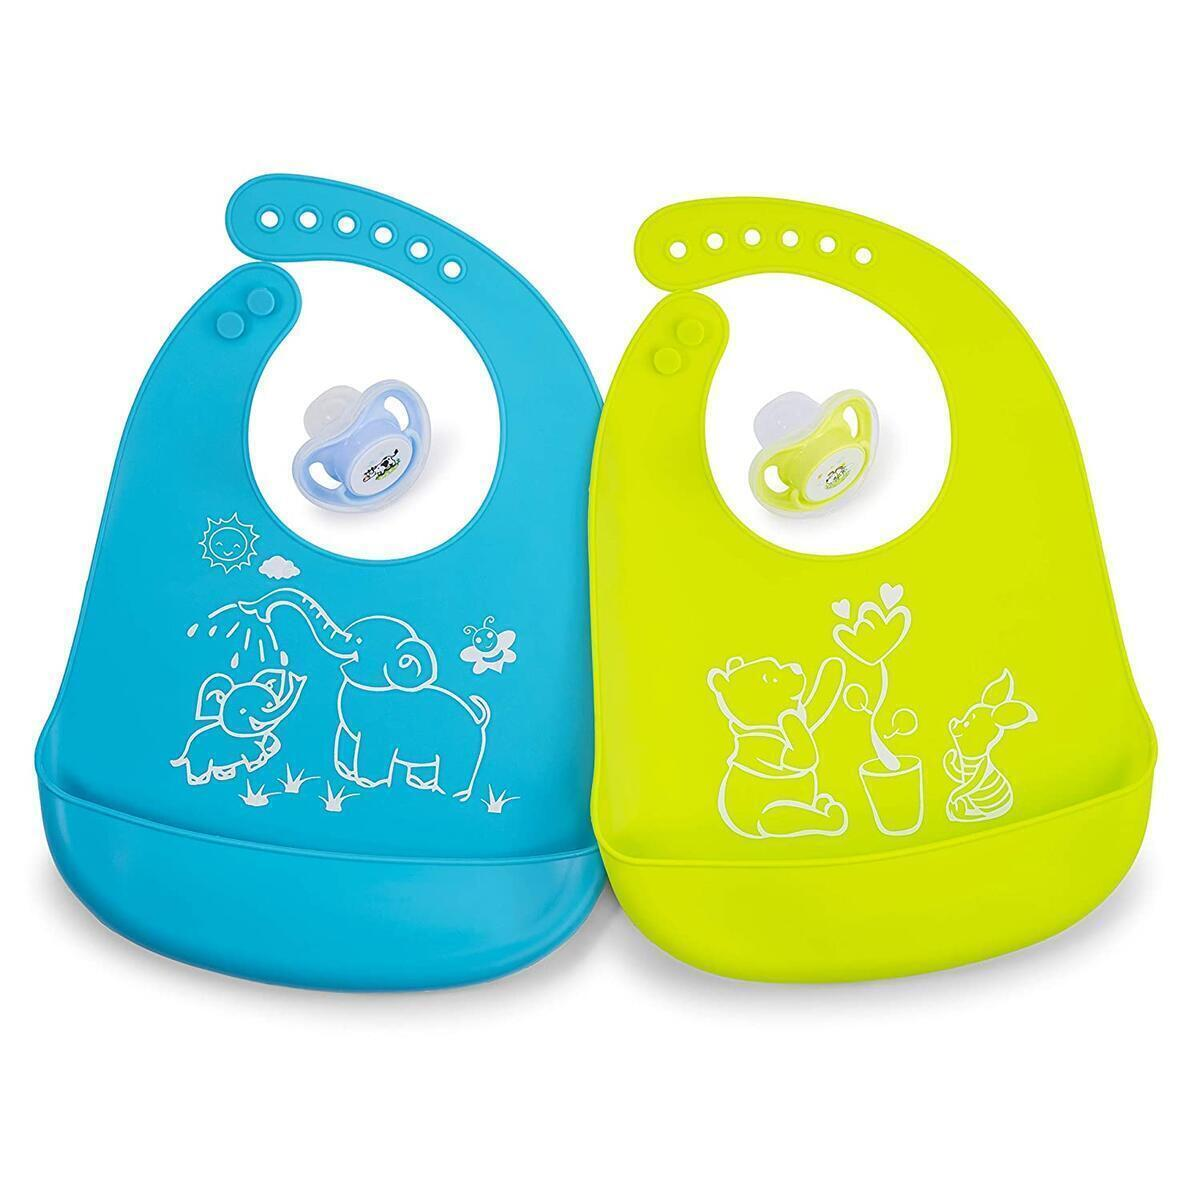 Johee's World Baby Bib and Pacifier Set - 2 Silicone Bibs for Babies + 2 Soothing Teething Pacifiers for Newborns Infants Toddlers Feeding Time Eating Cute Modern Prints for Girls Boys (0-24 Months)